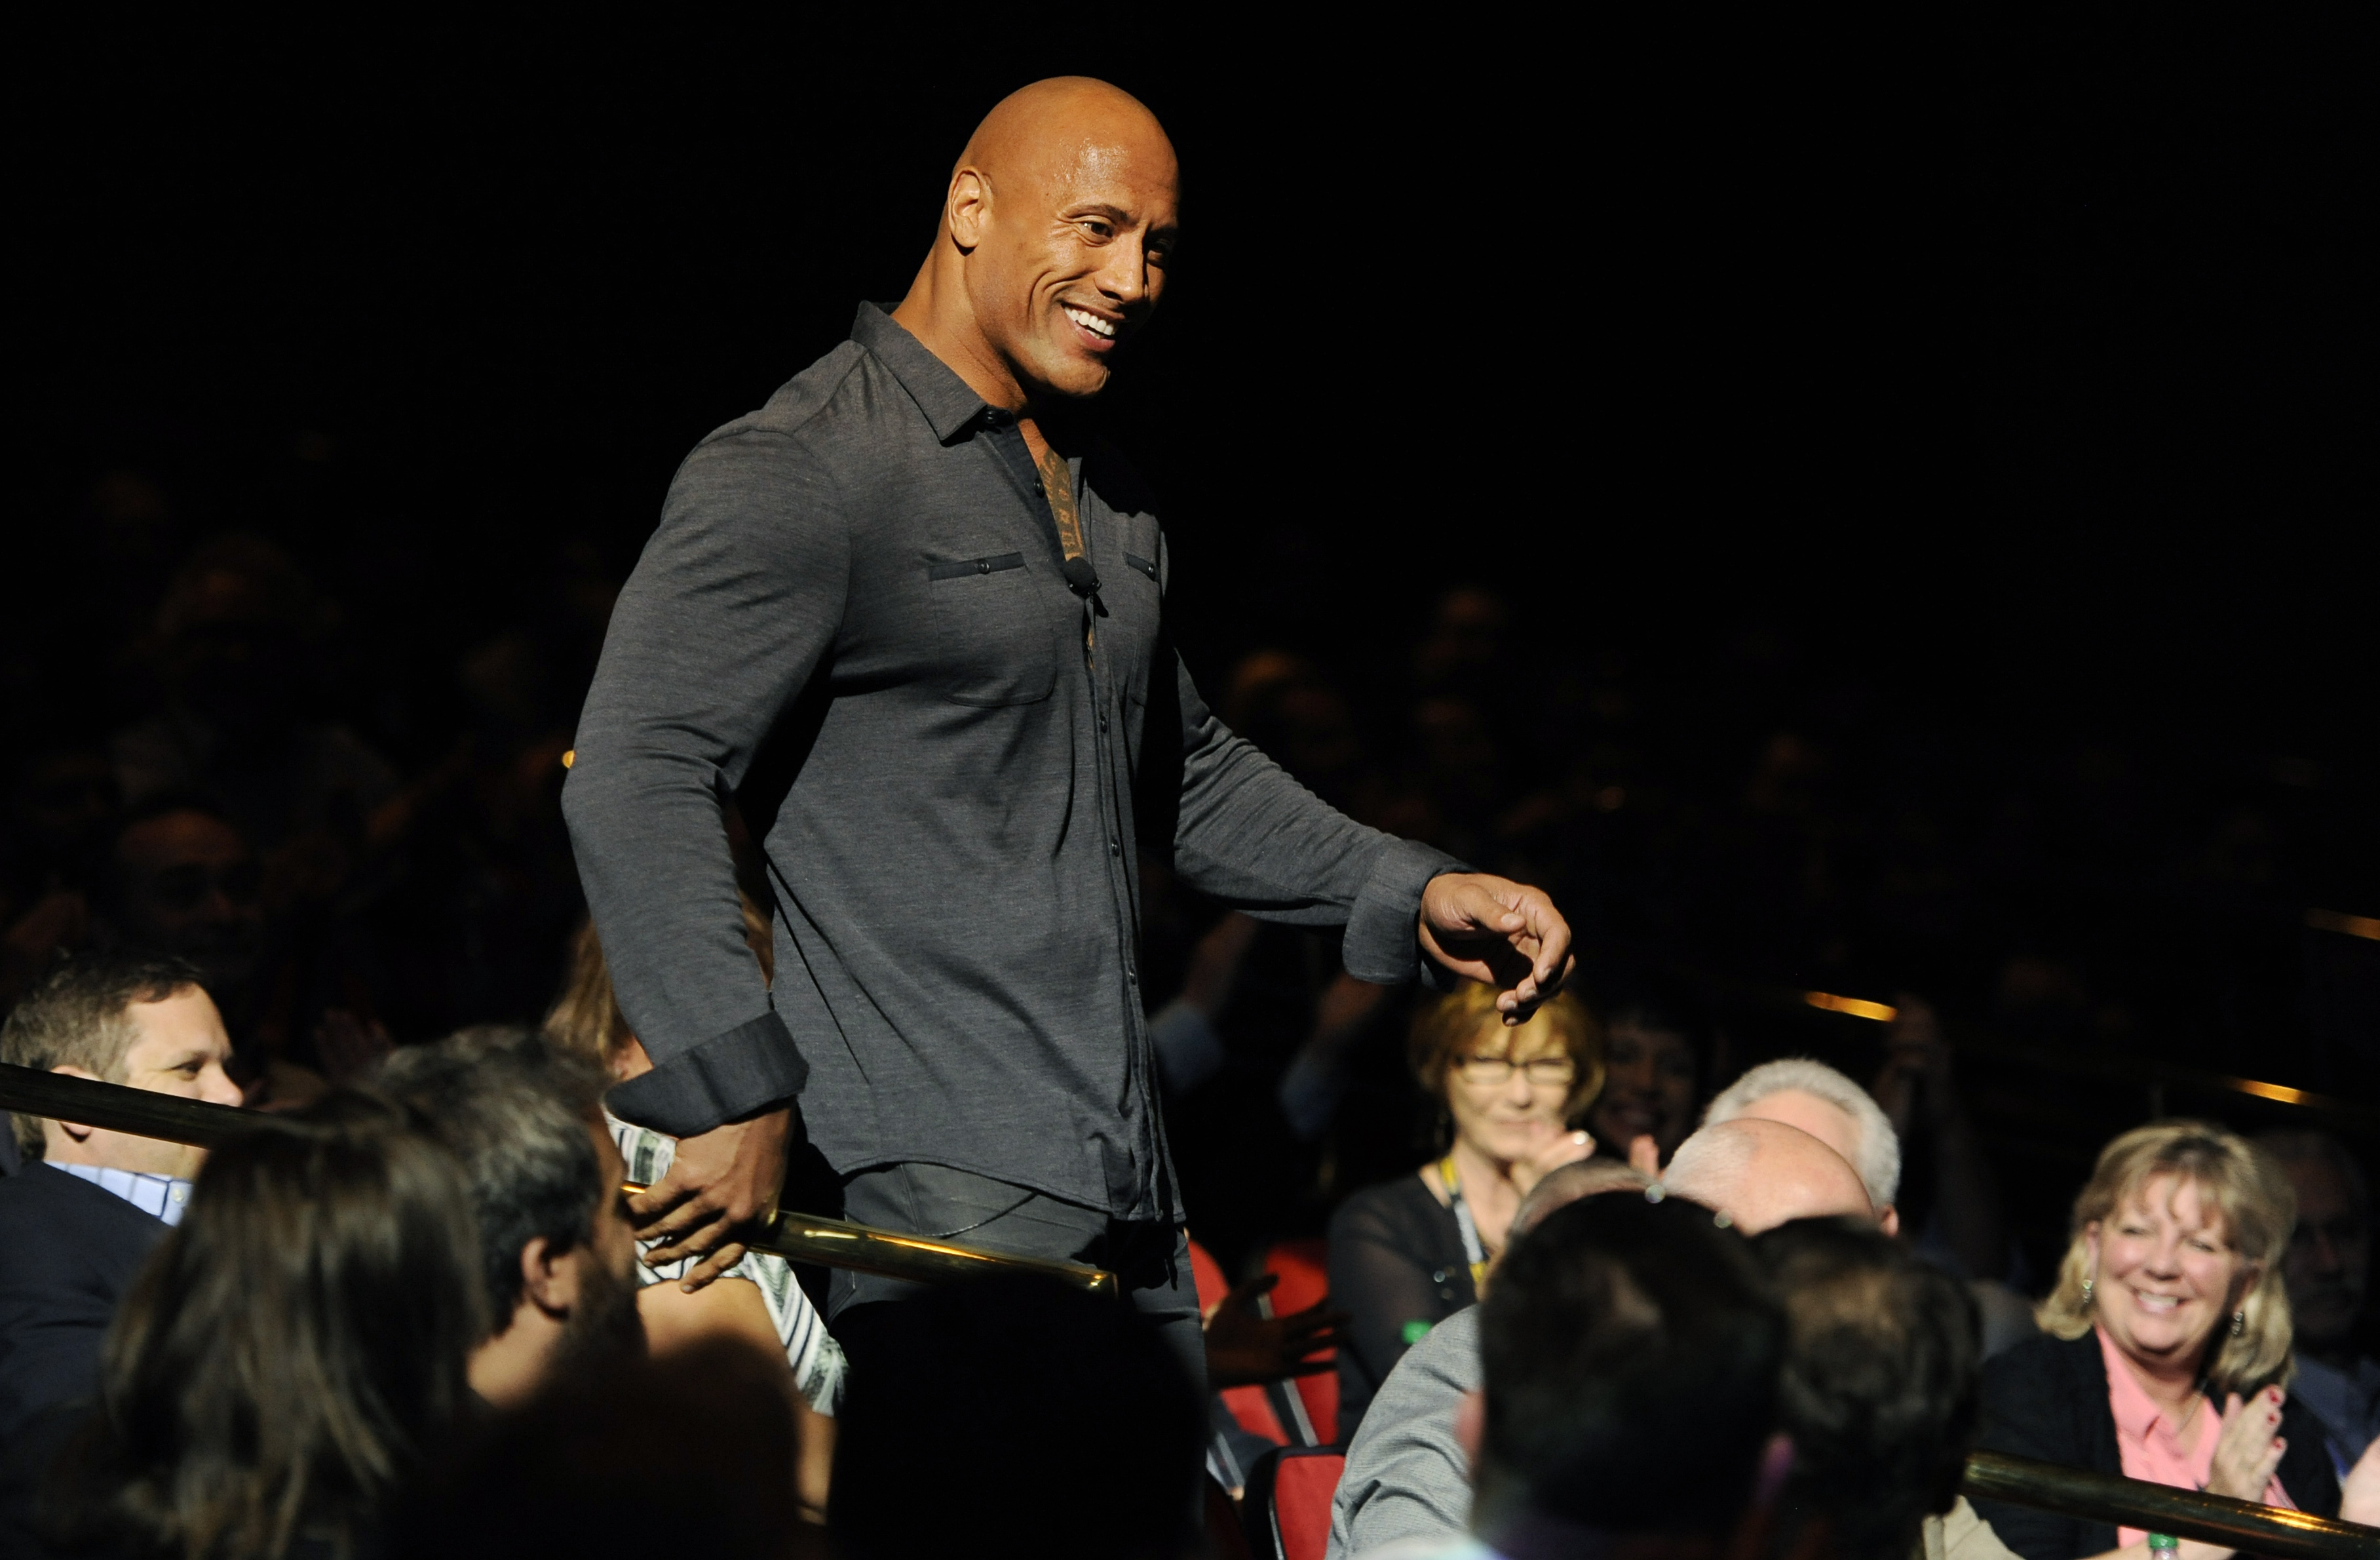 Dwayne Johnson Dead? Nope, The Rock Hasn't Died in New Zealand Fall; Posts Video Amid Fake 'RIP' Death Hoax